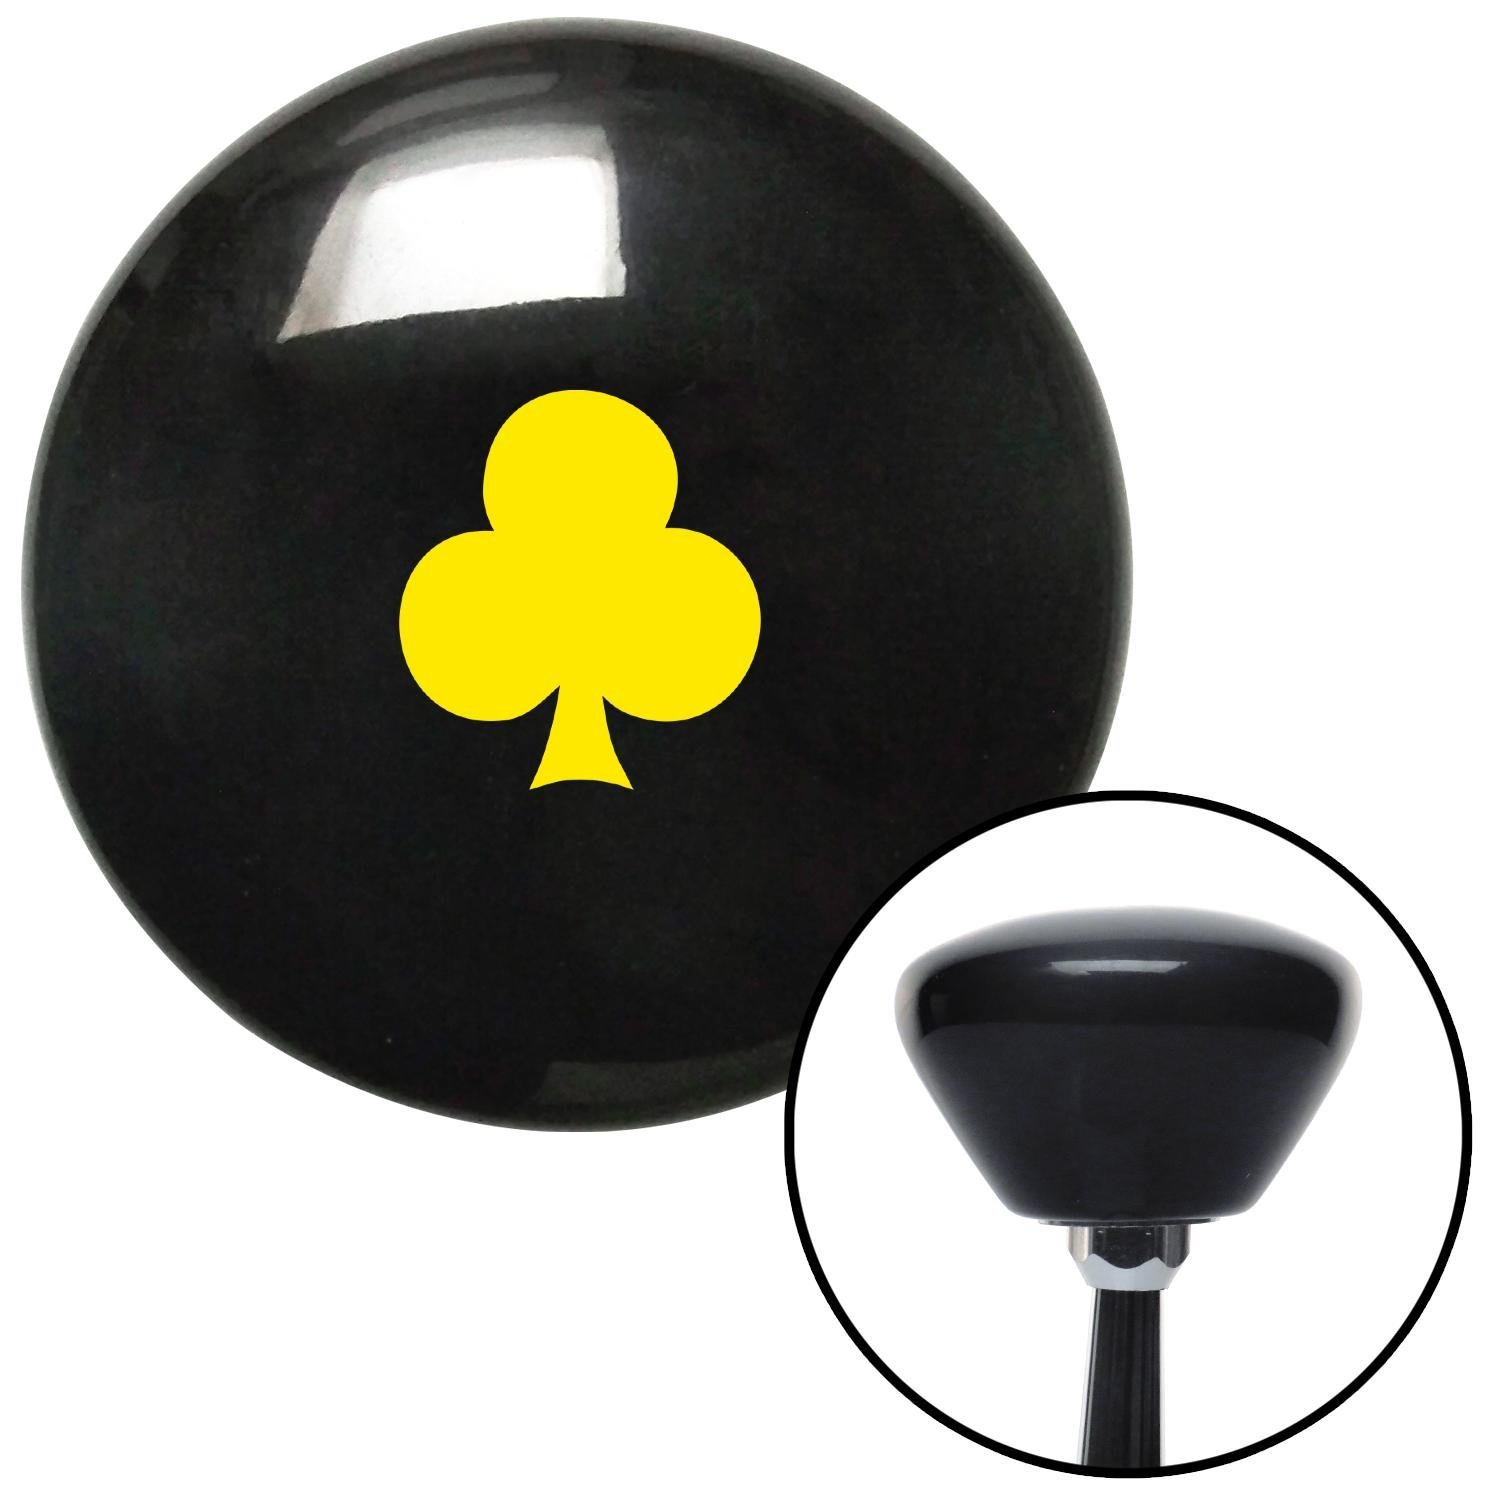 American Shifter 280978 Shift Knob Yellow Clubs Black Retro with M16 x 1.5 Insert